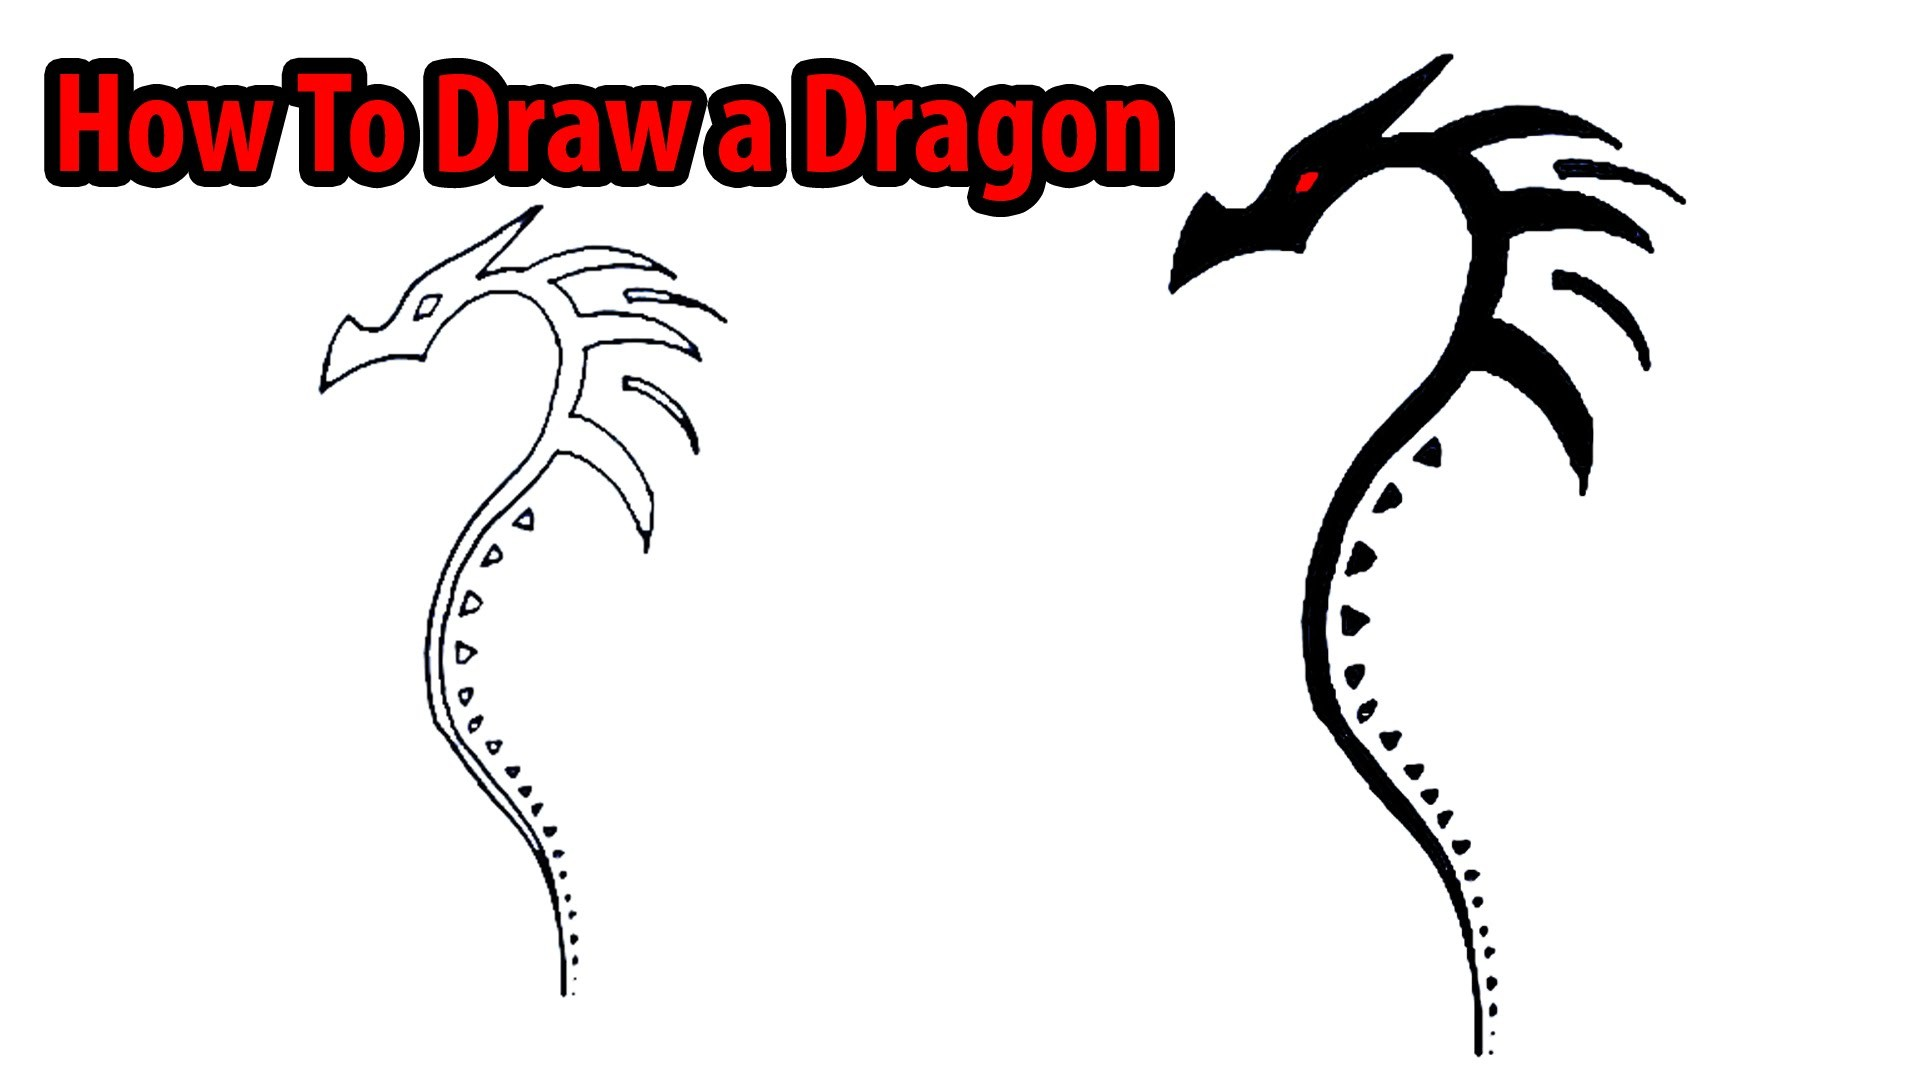 How To Draw Goku Ssj 3 Dragon Ball Z Youtube How To Draw A Dragon Easy